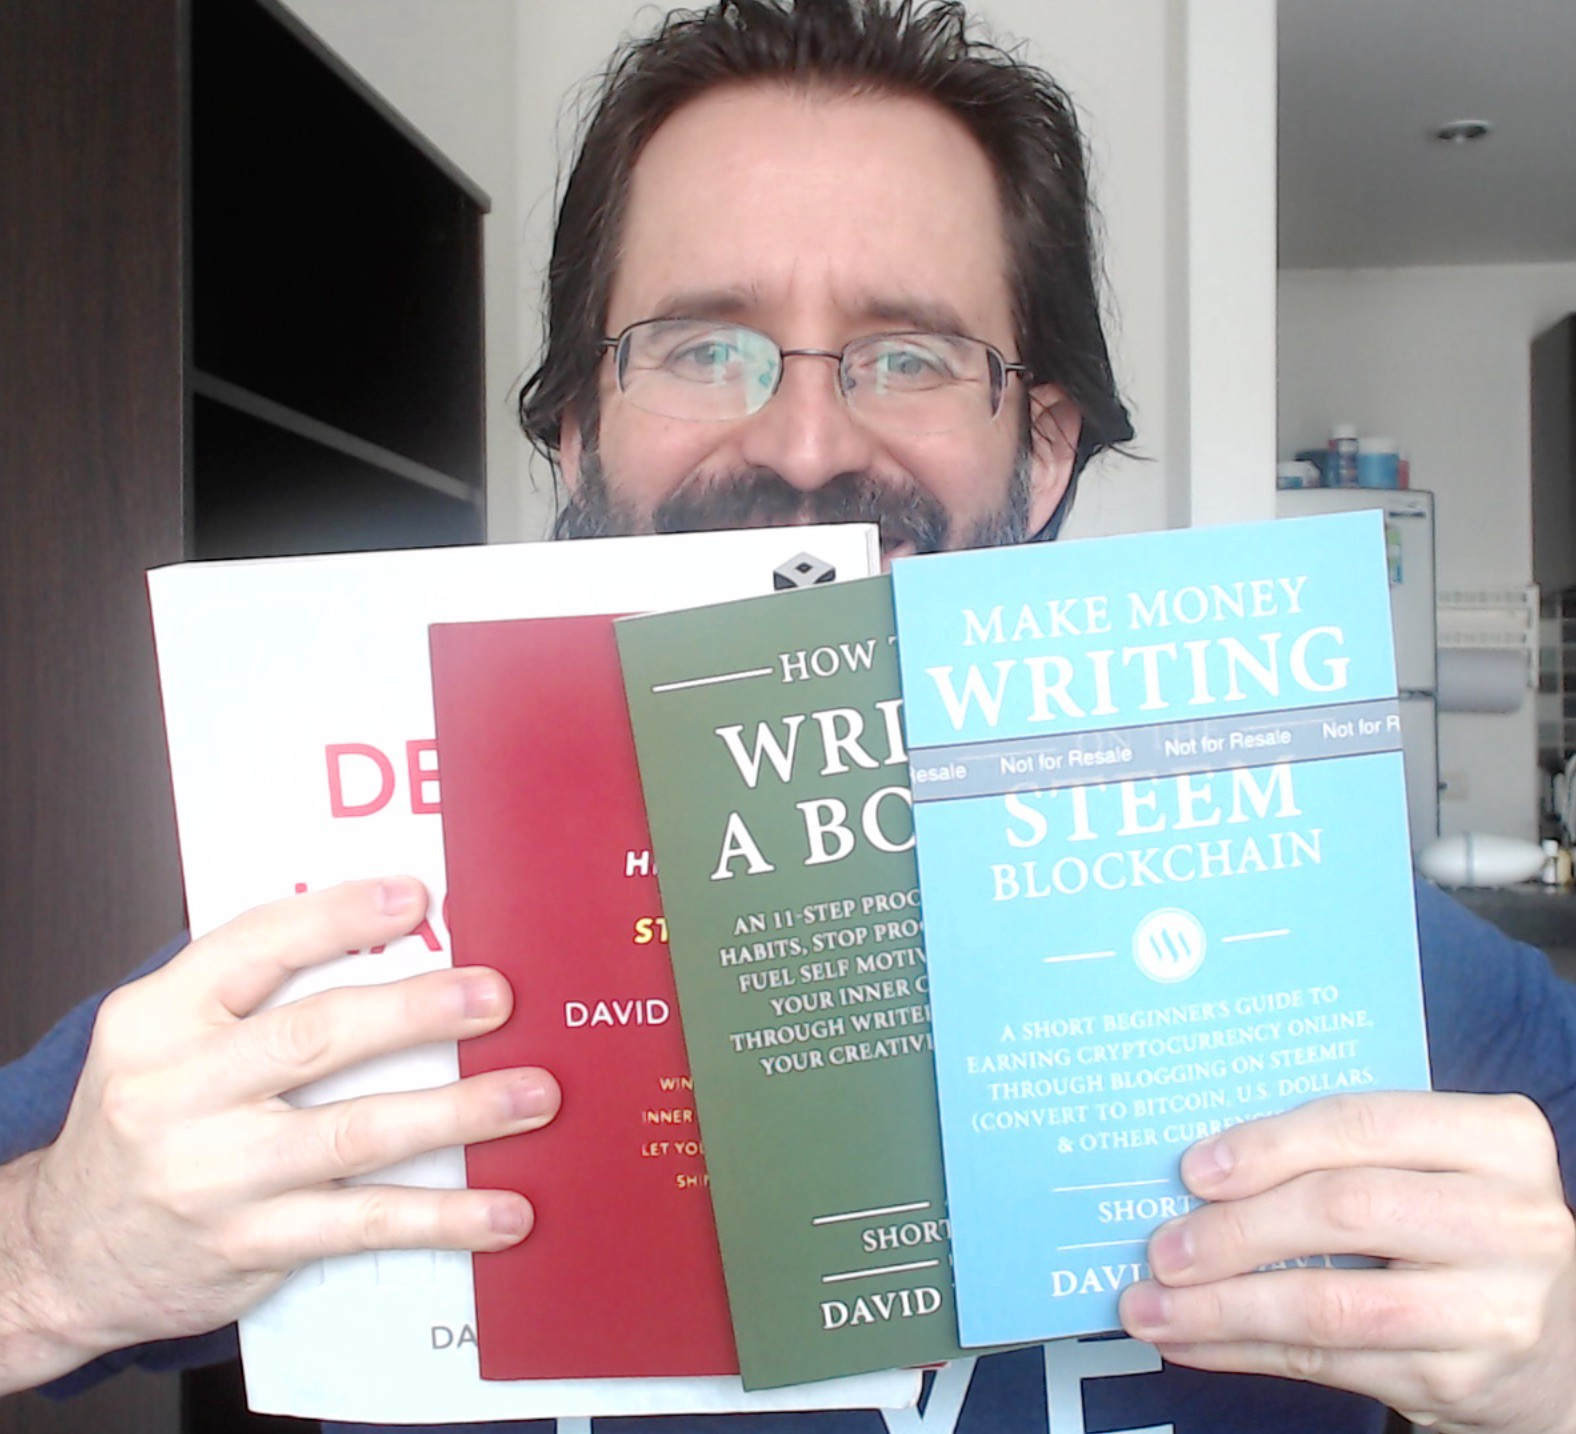 https://writingcooperative.com/24-things-i-learned-publishing-3-books-in-only-6-months-1b8f743e9e86?gi=c8d36f988a07